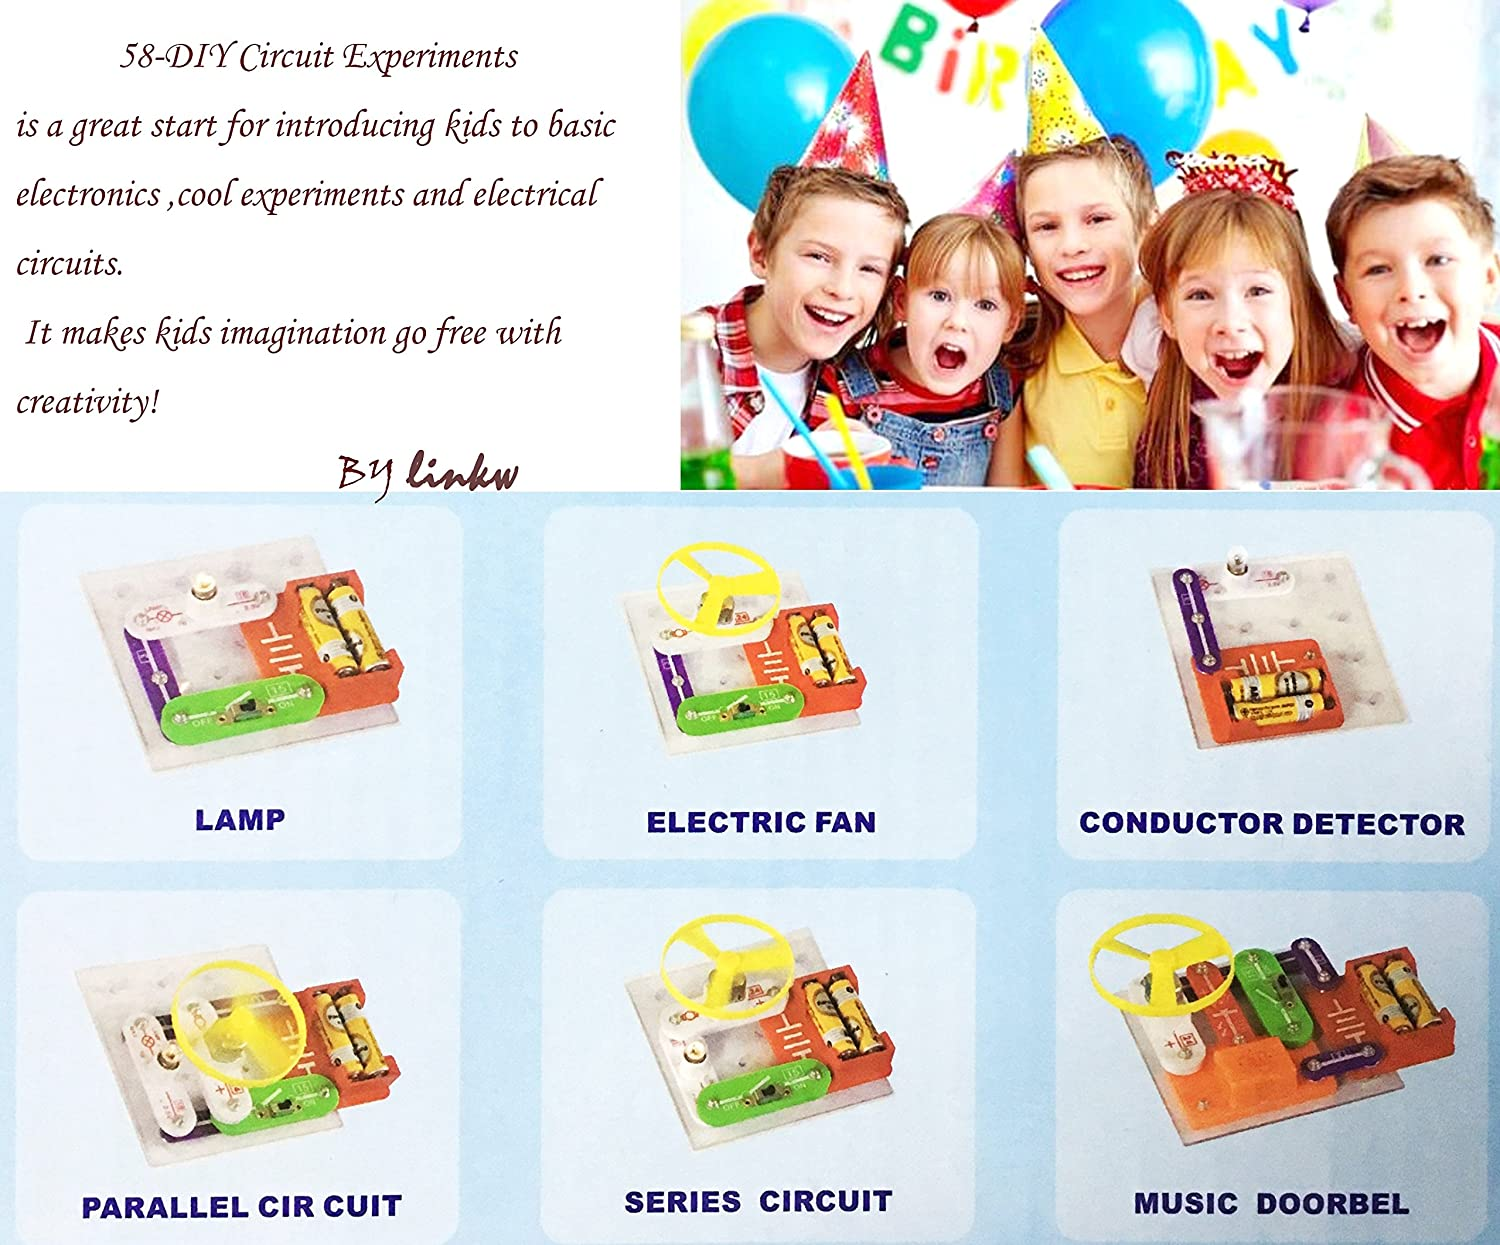 58 Diy Circuits For Kidskids Circuitskids Circuit Kit Thorough And Provides A Great Introduction To Electric Kitscience Experiments Kidsscience Kits Kidselectronic Building Block